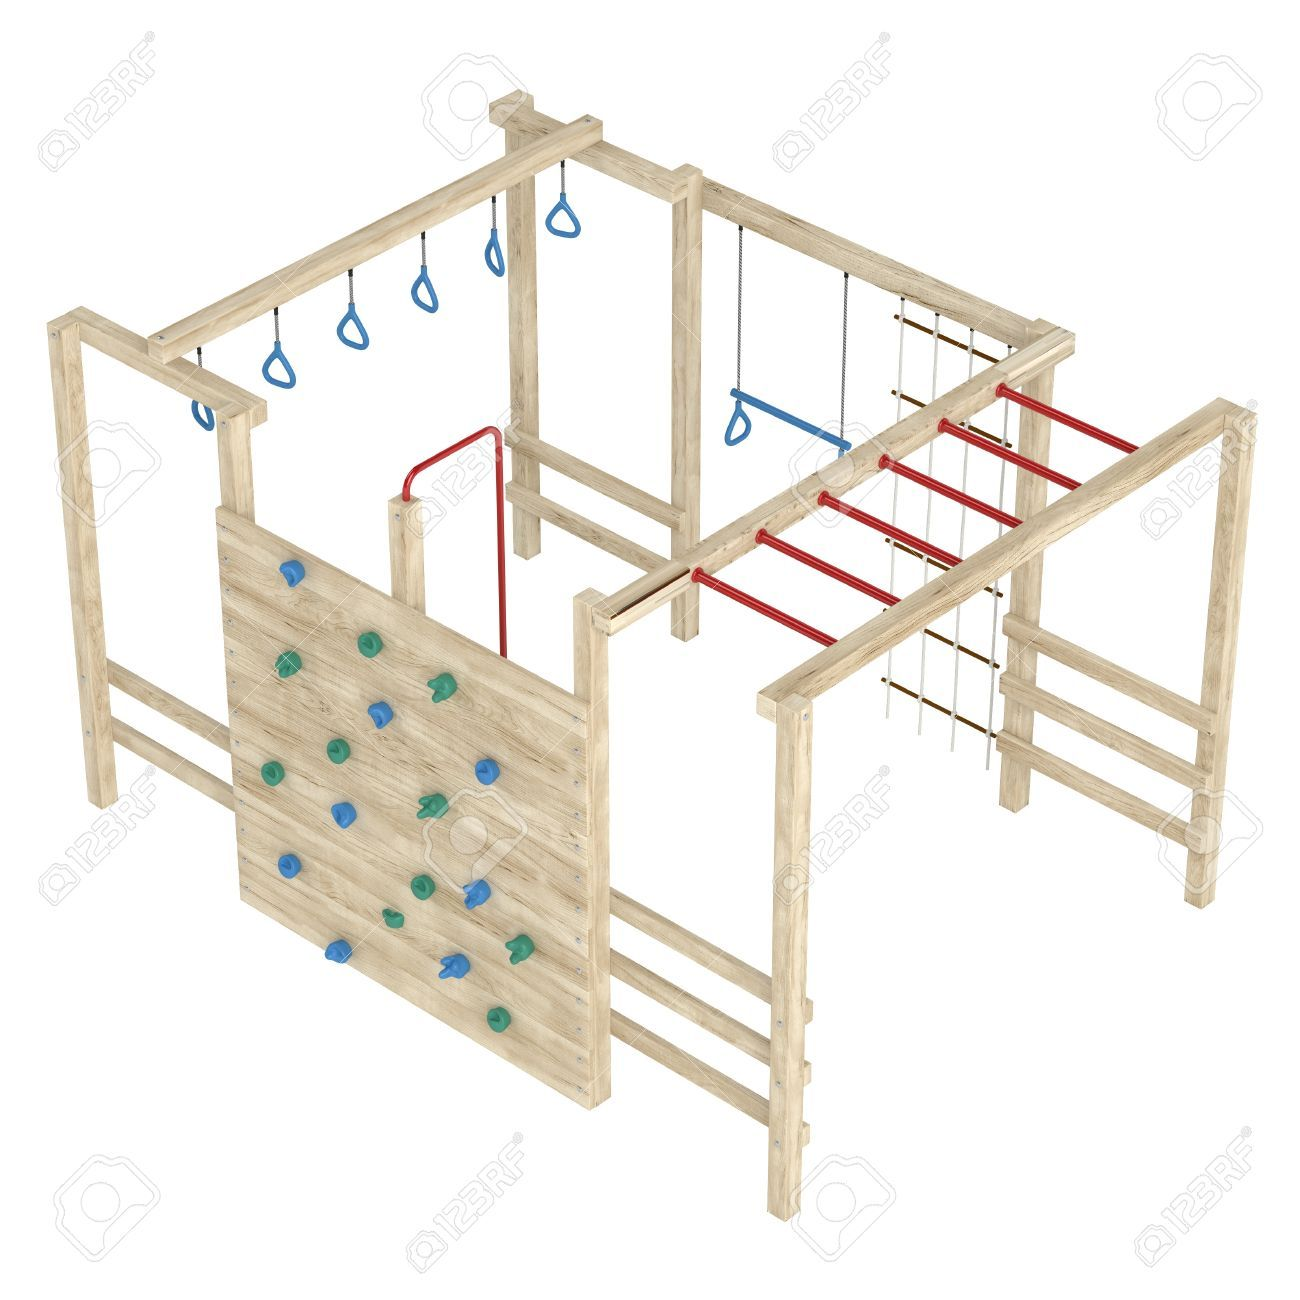 Wooden jungle gym or climbing frame with handholds for Jungle gym plans